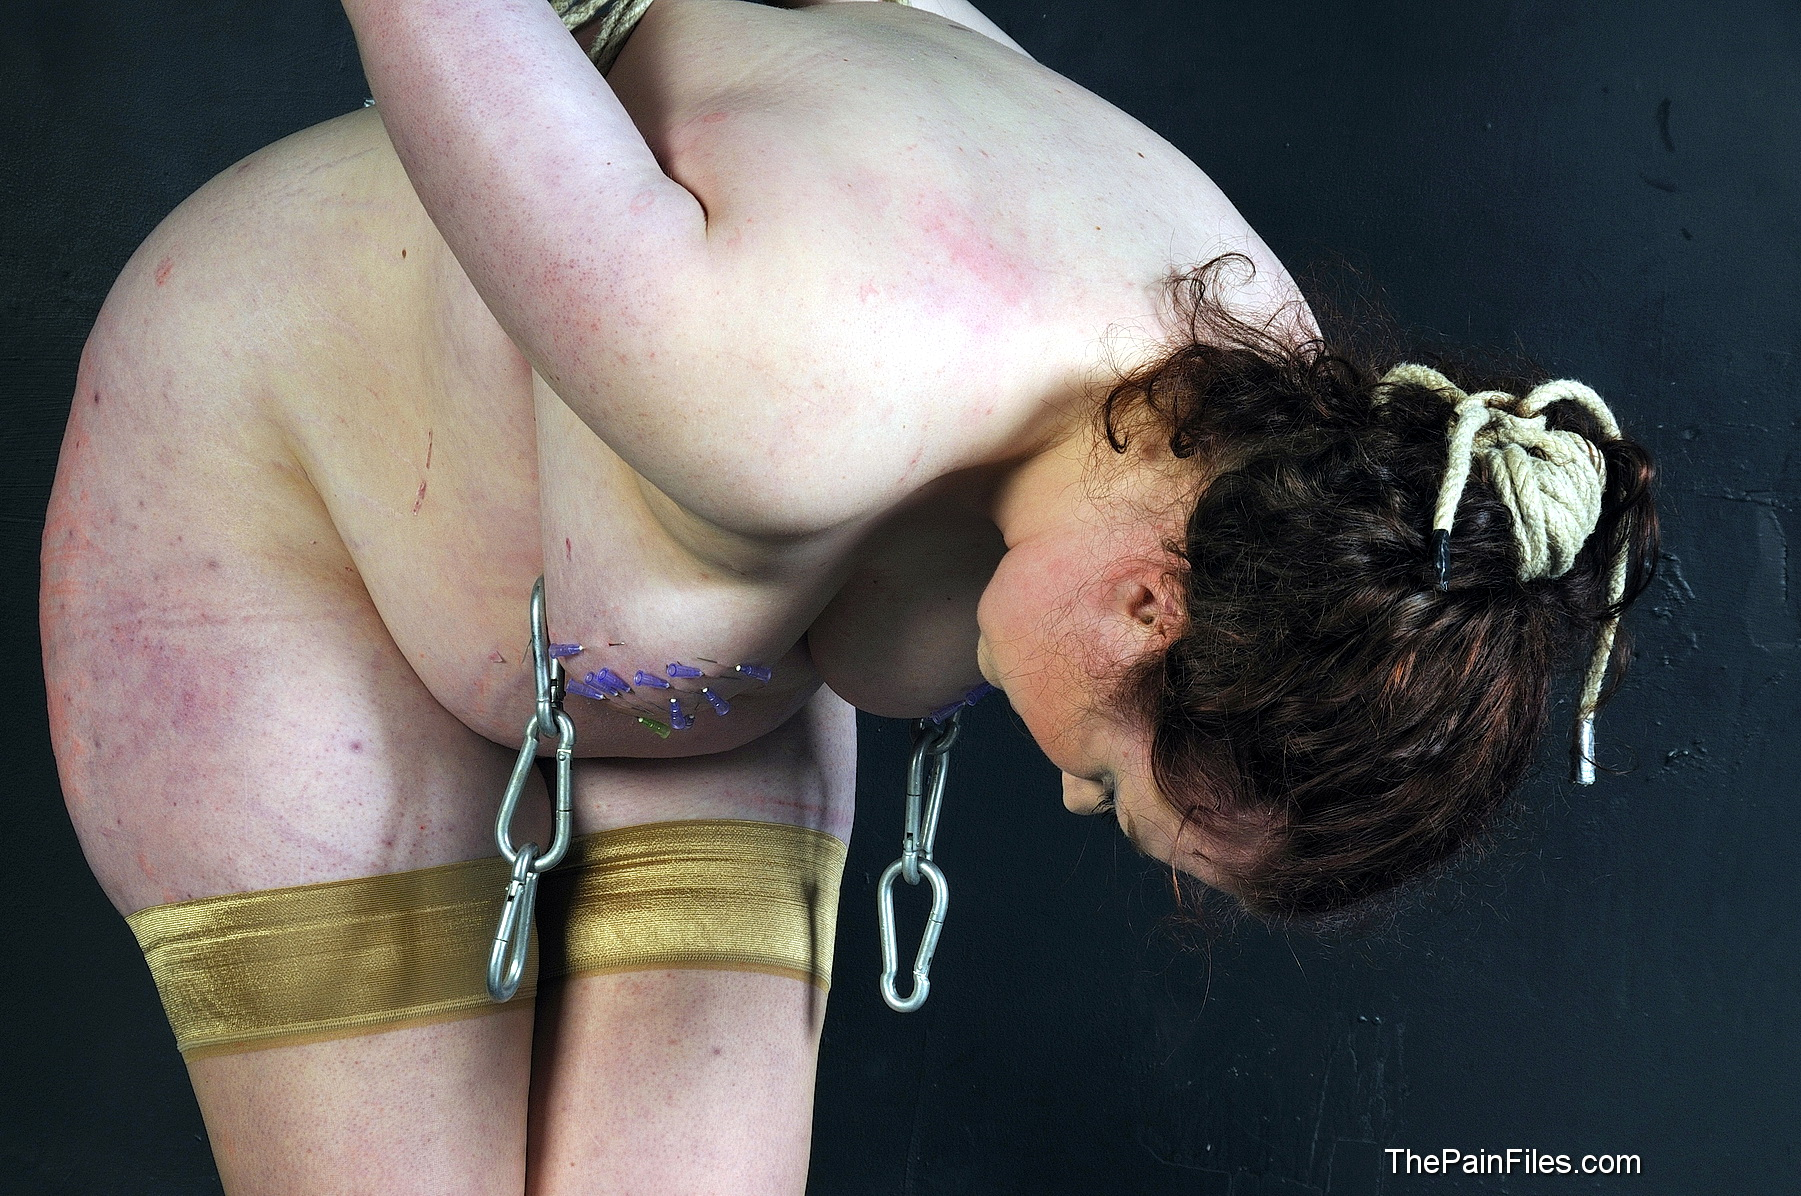 Sorry, bbw torture bondage opinion you